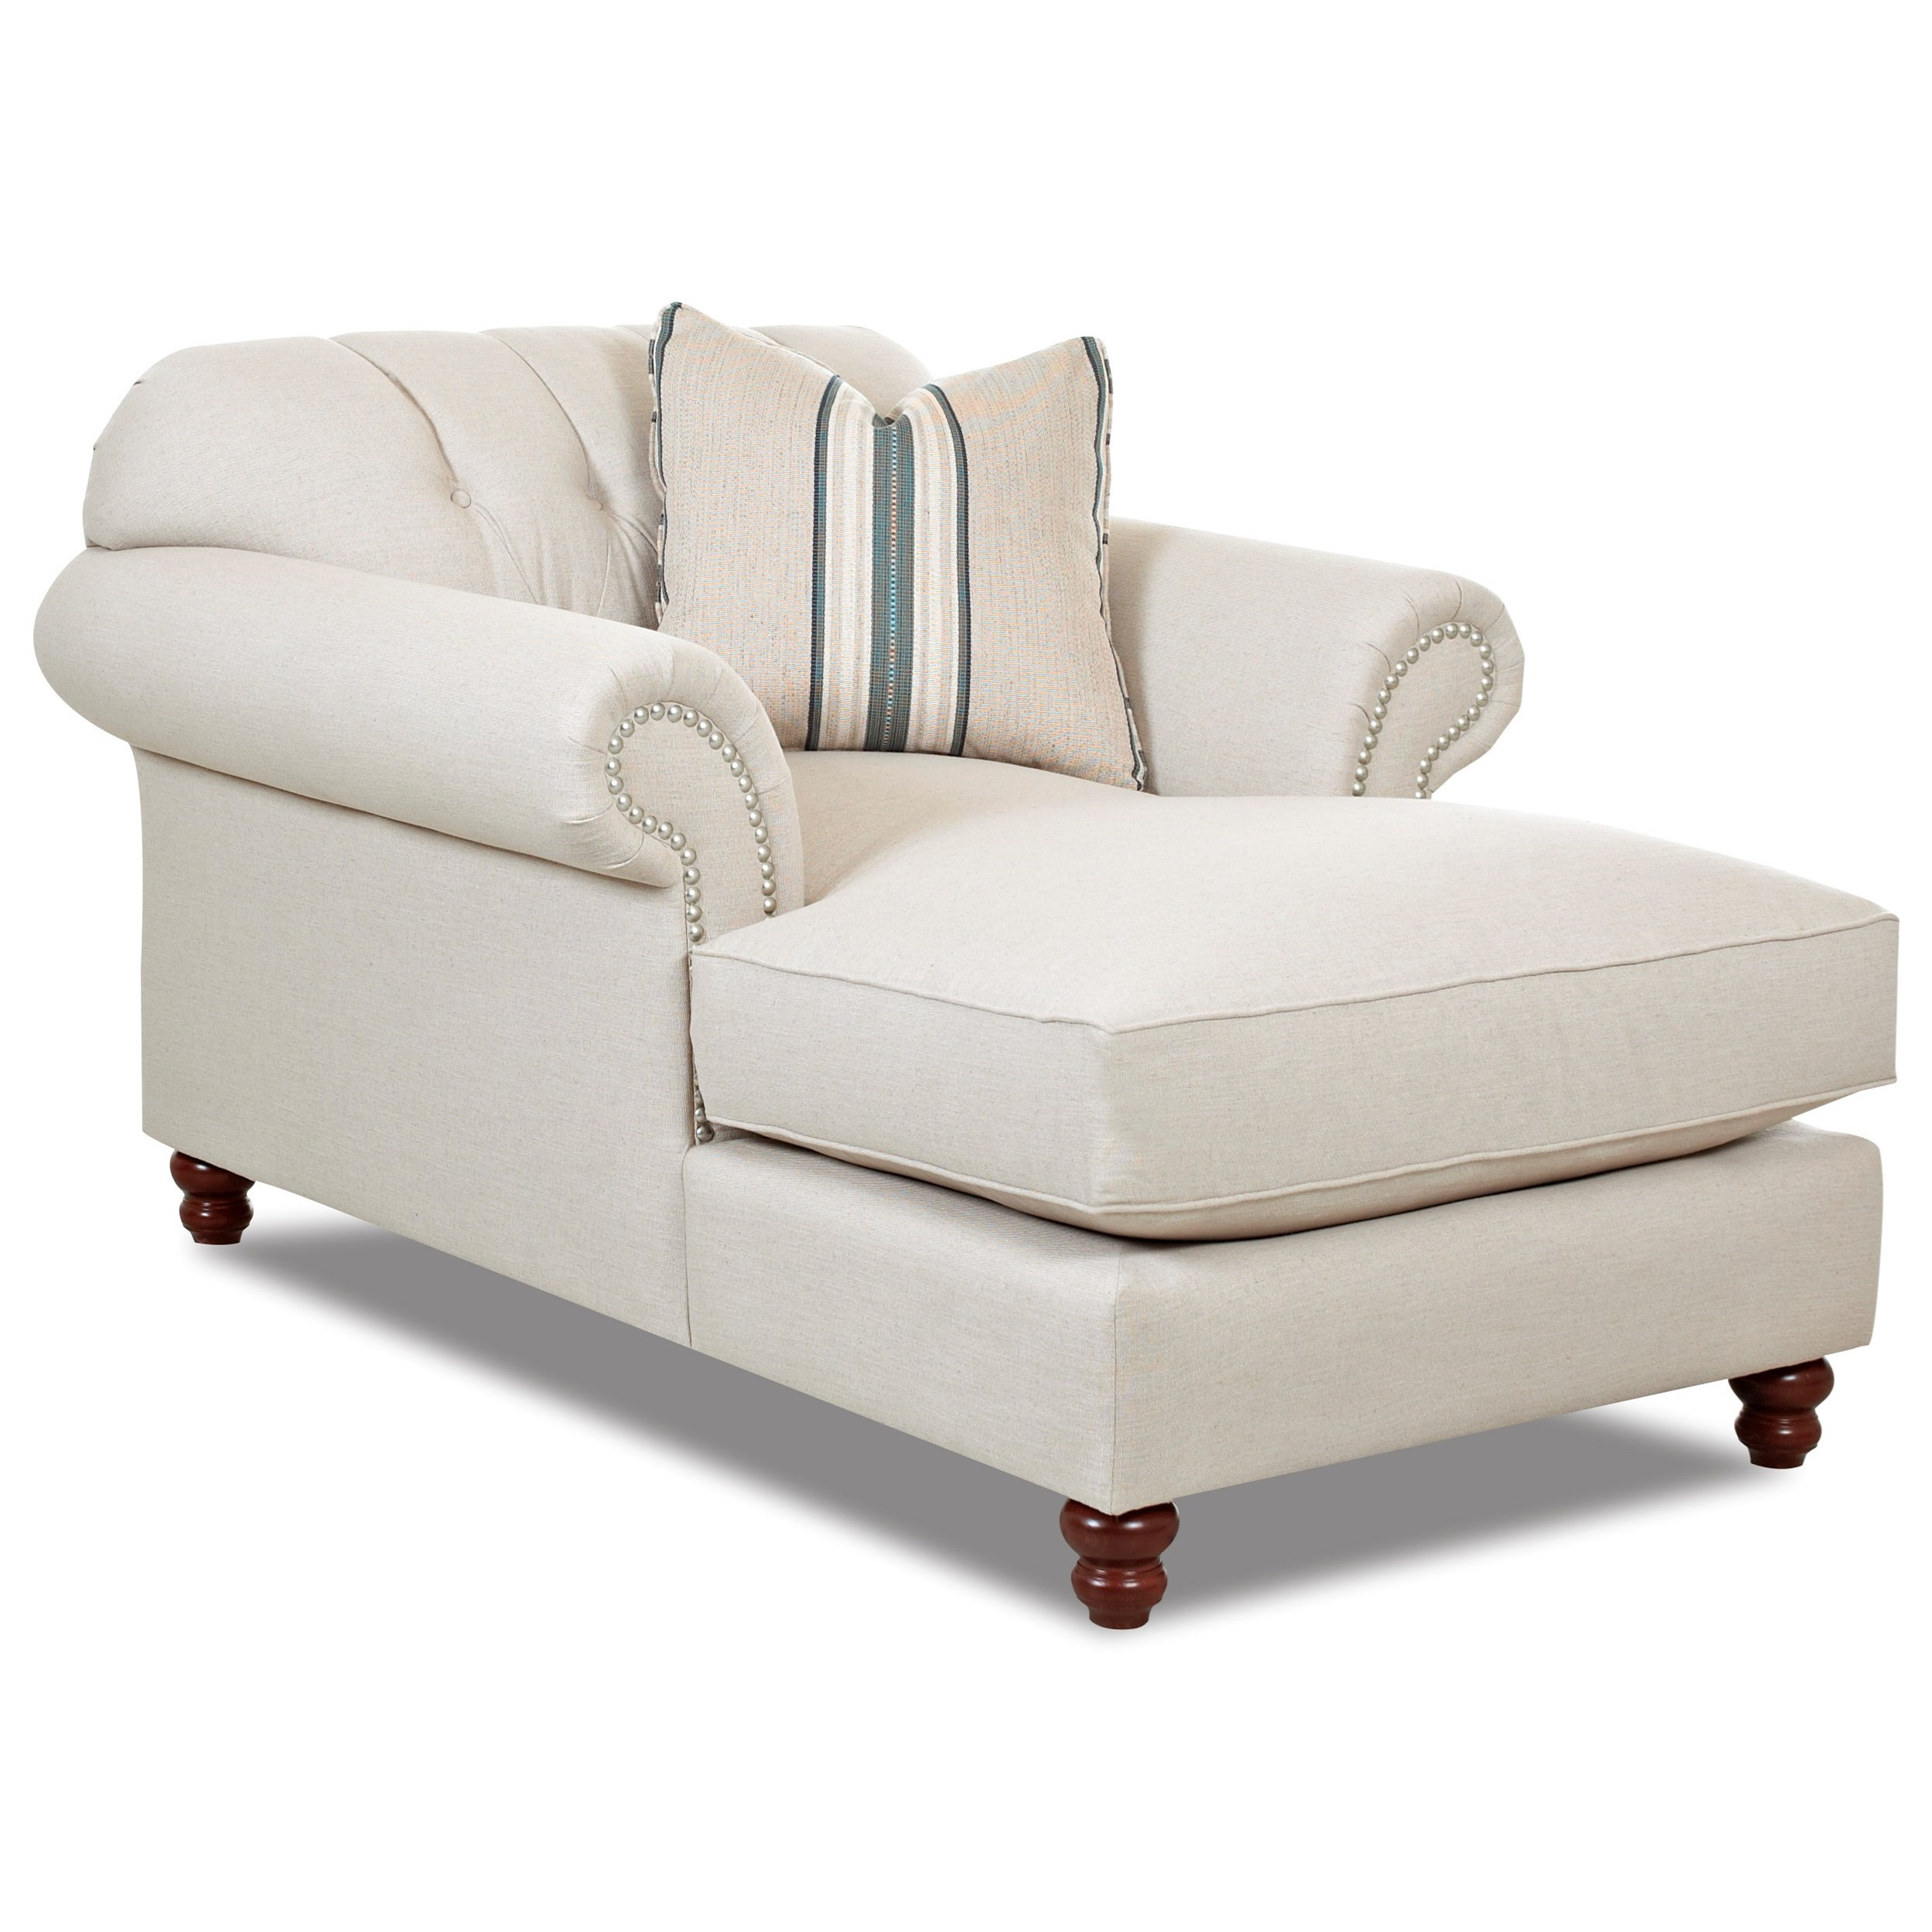 Traditional Chaise with Button Tufted Back, Rolled Arms and Throw Pillow